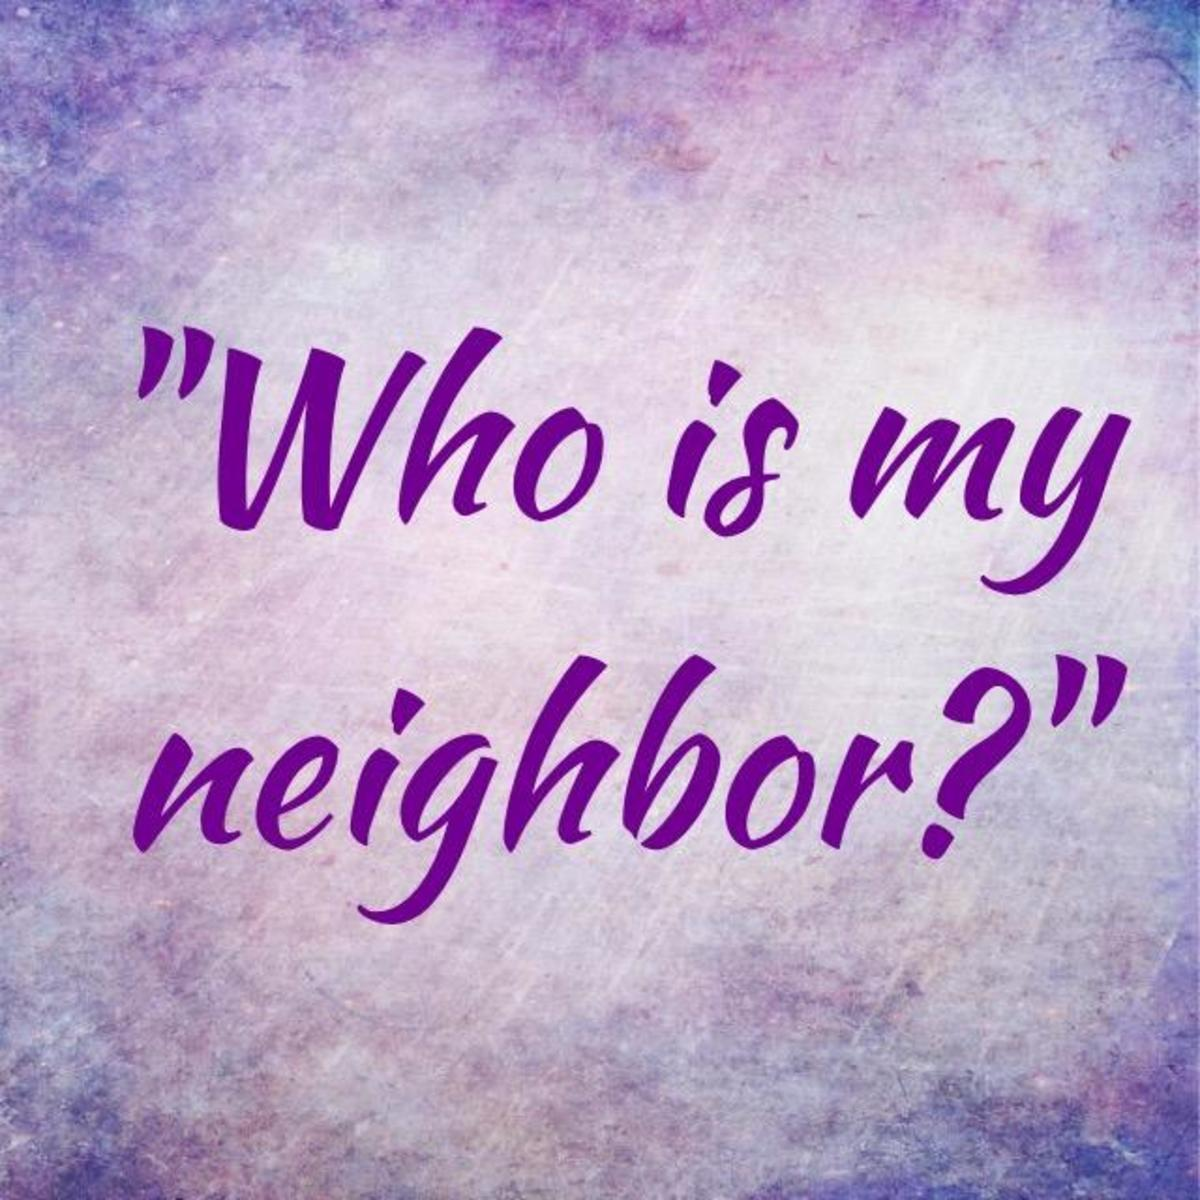 who-was-the-good-neighbor-the-priest-levite-or-the-samaritan